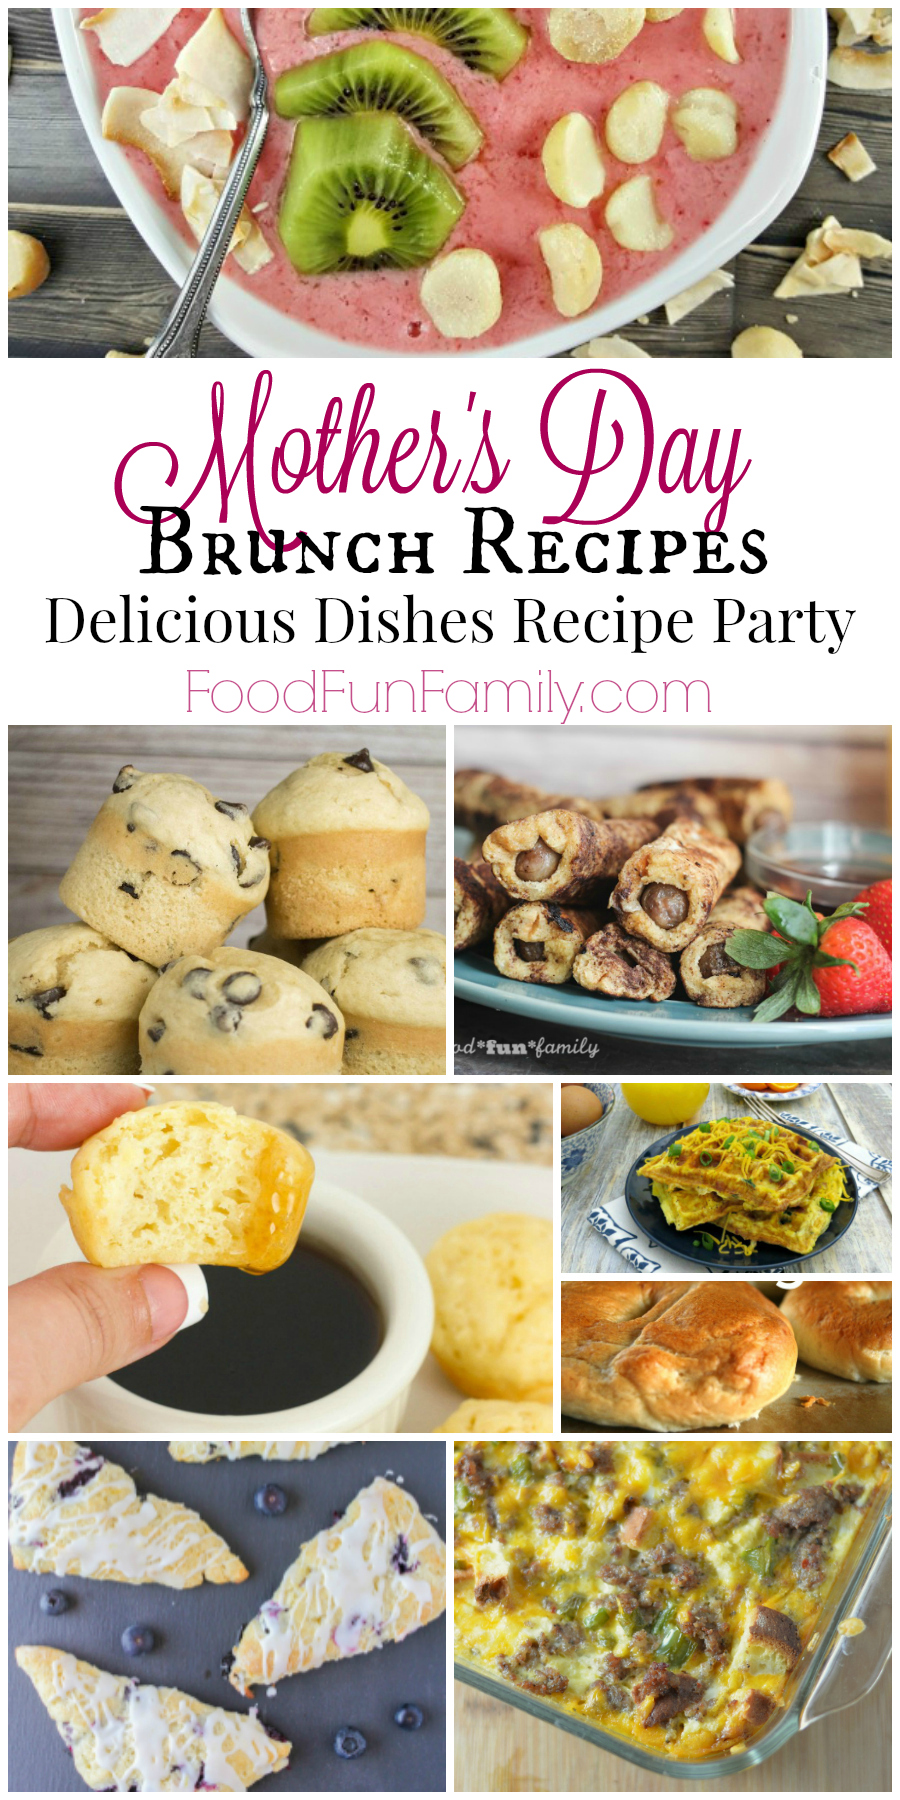 Mother's Day brunch recipes - a Delicious Dishes Recipe Party round up from Food Fun Family